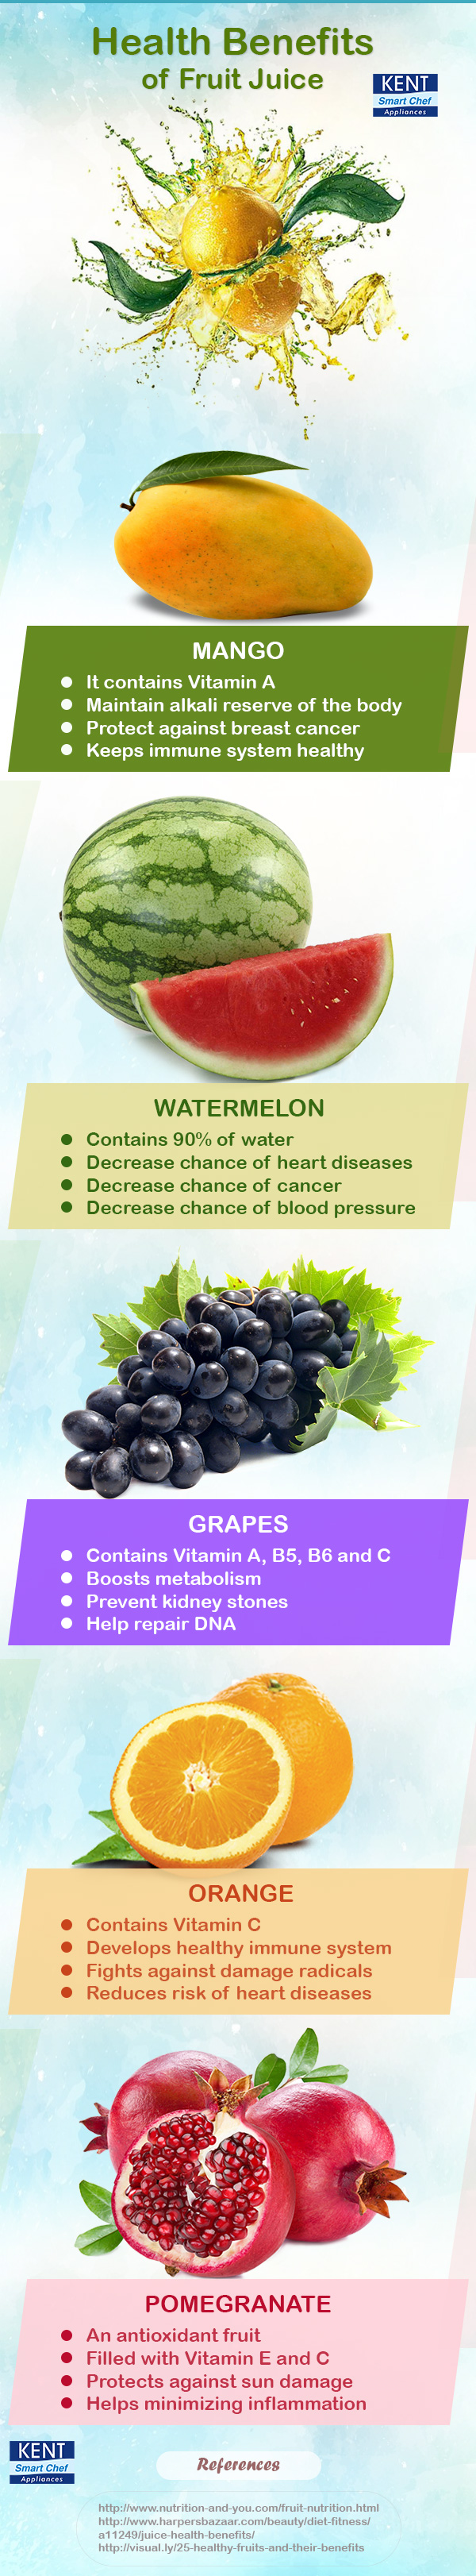 Health Benefits Fruit Juice